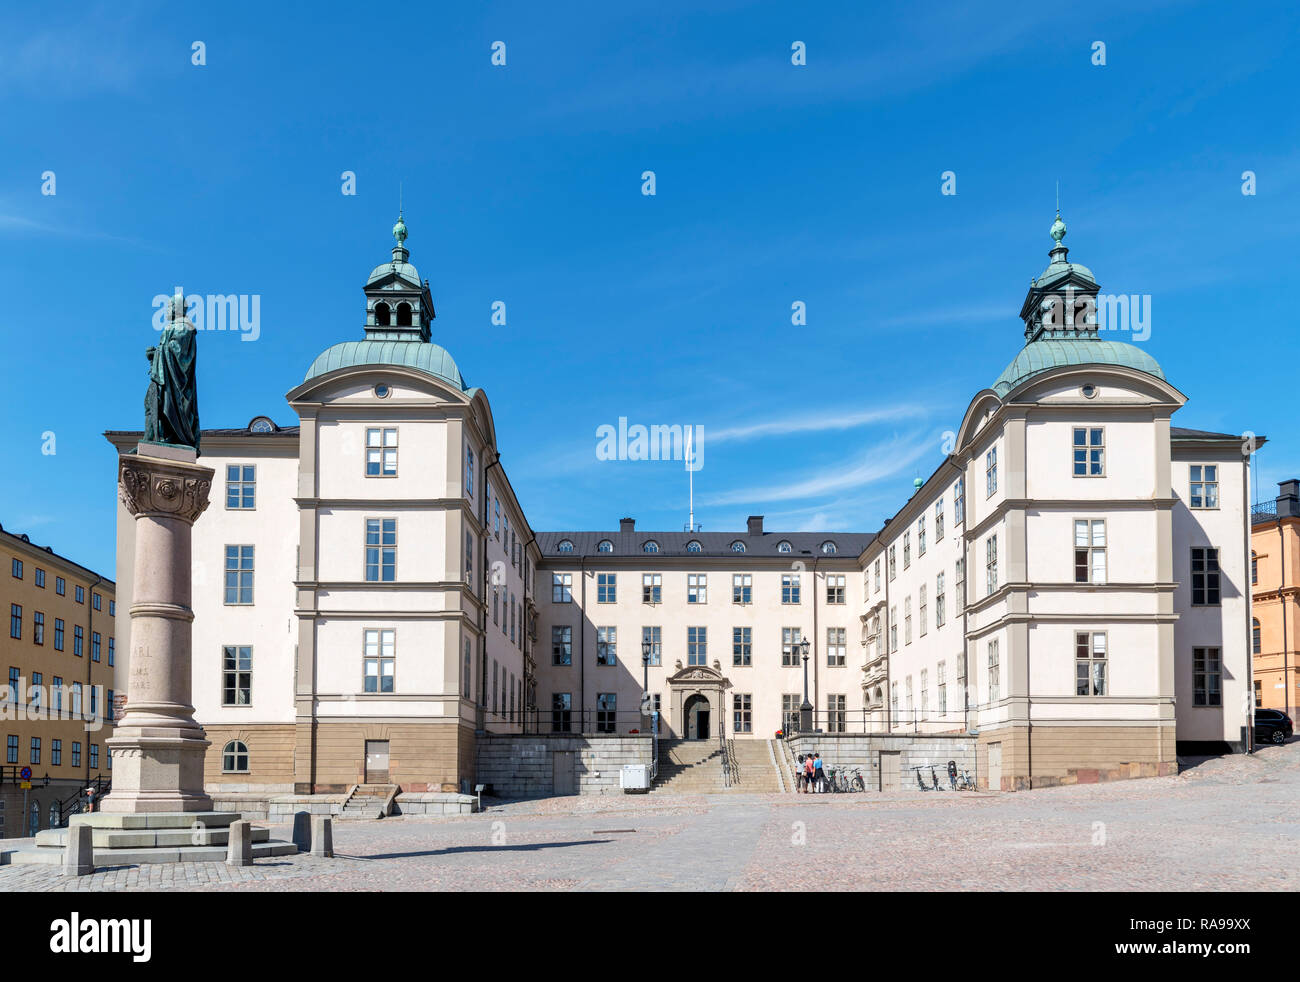 The Wrangel Palace, the seat of the Svea Court of Appeal, with the statue of Birger Jarl on left, Birger Jarls torg, Riddarholmen, Stockholm, Sweden - Stock Image